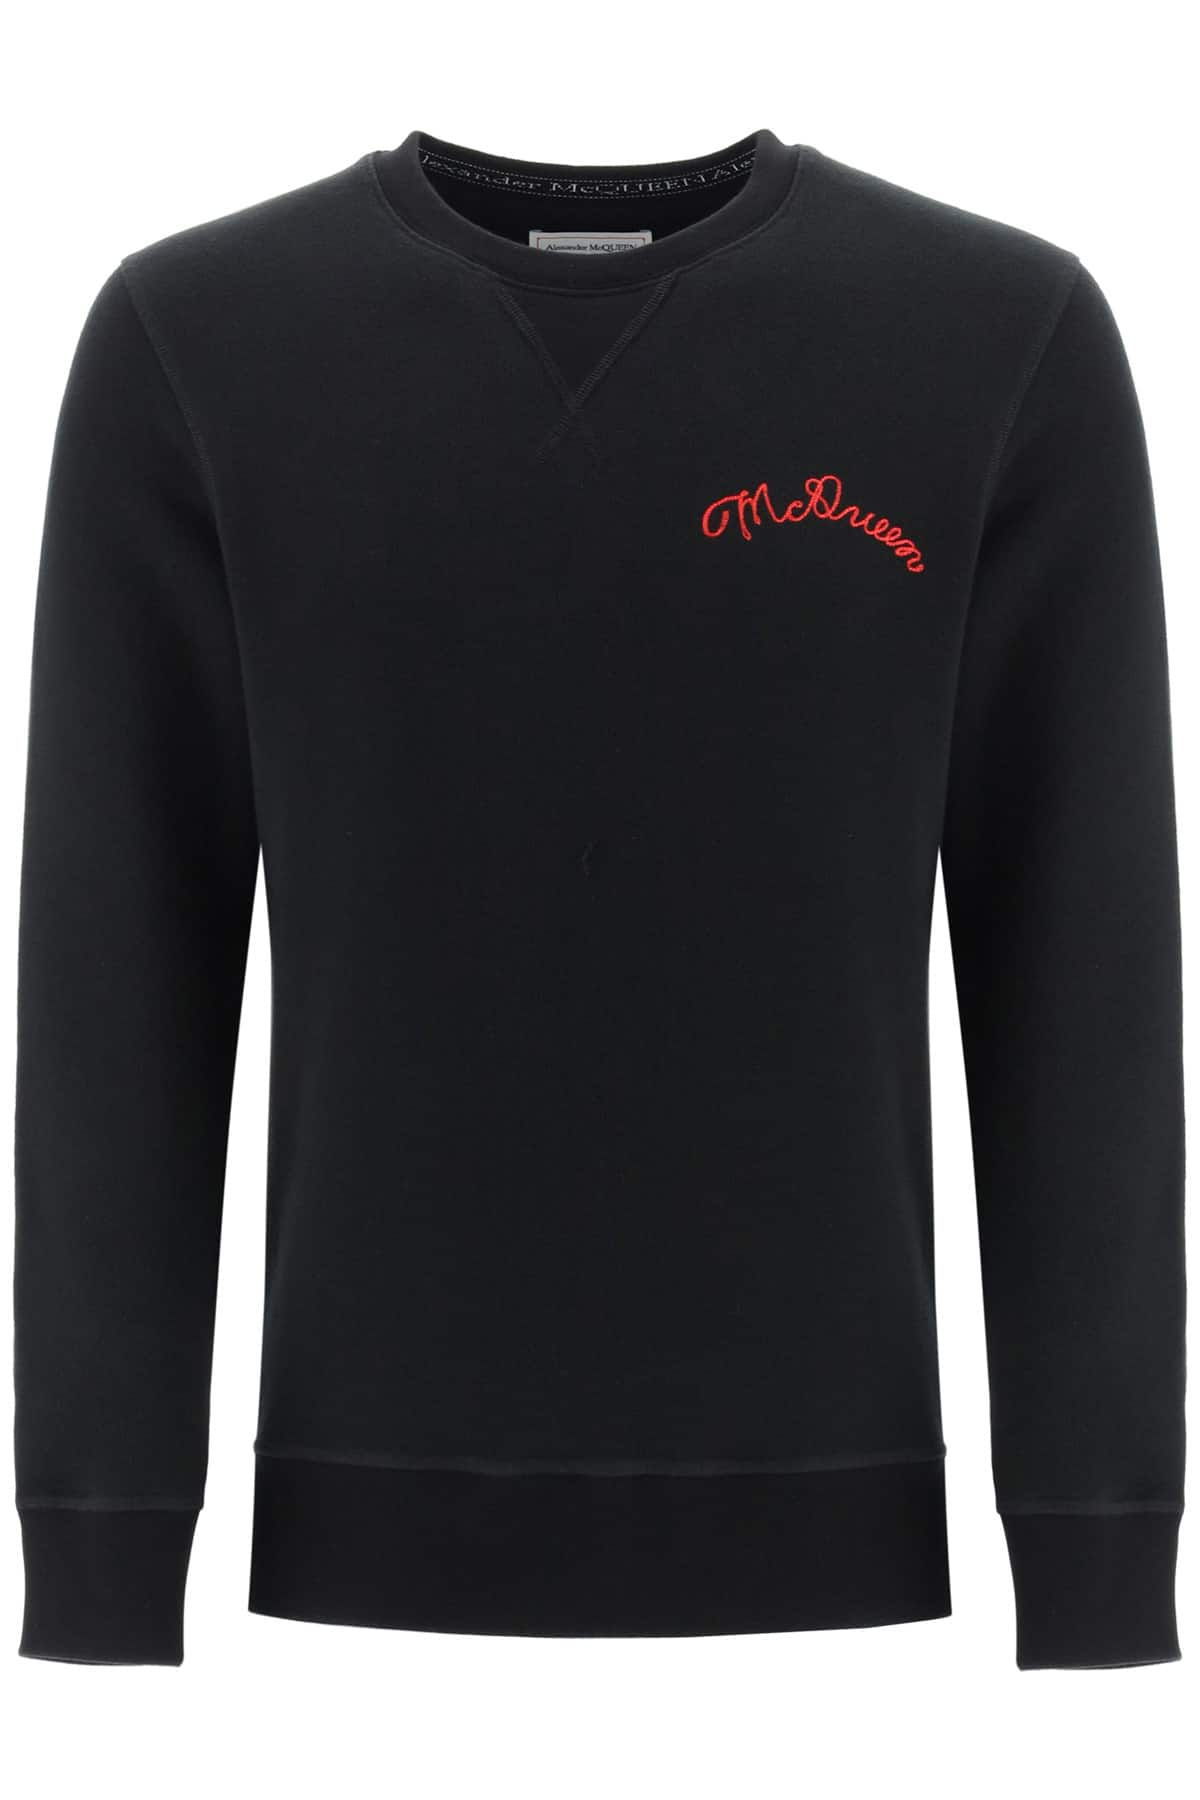 ALEXANDER MCQUEEN SWEATSHIRT WITH LOGO EMBROIDERY L Black Cotton